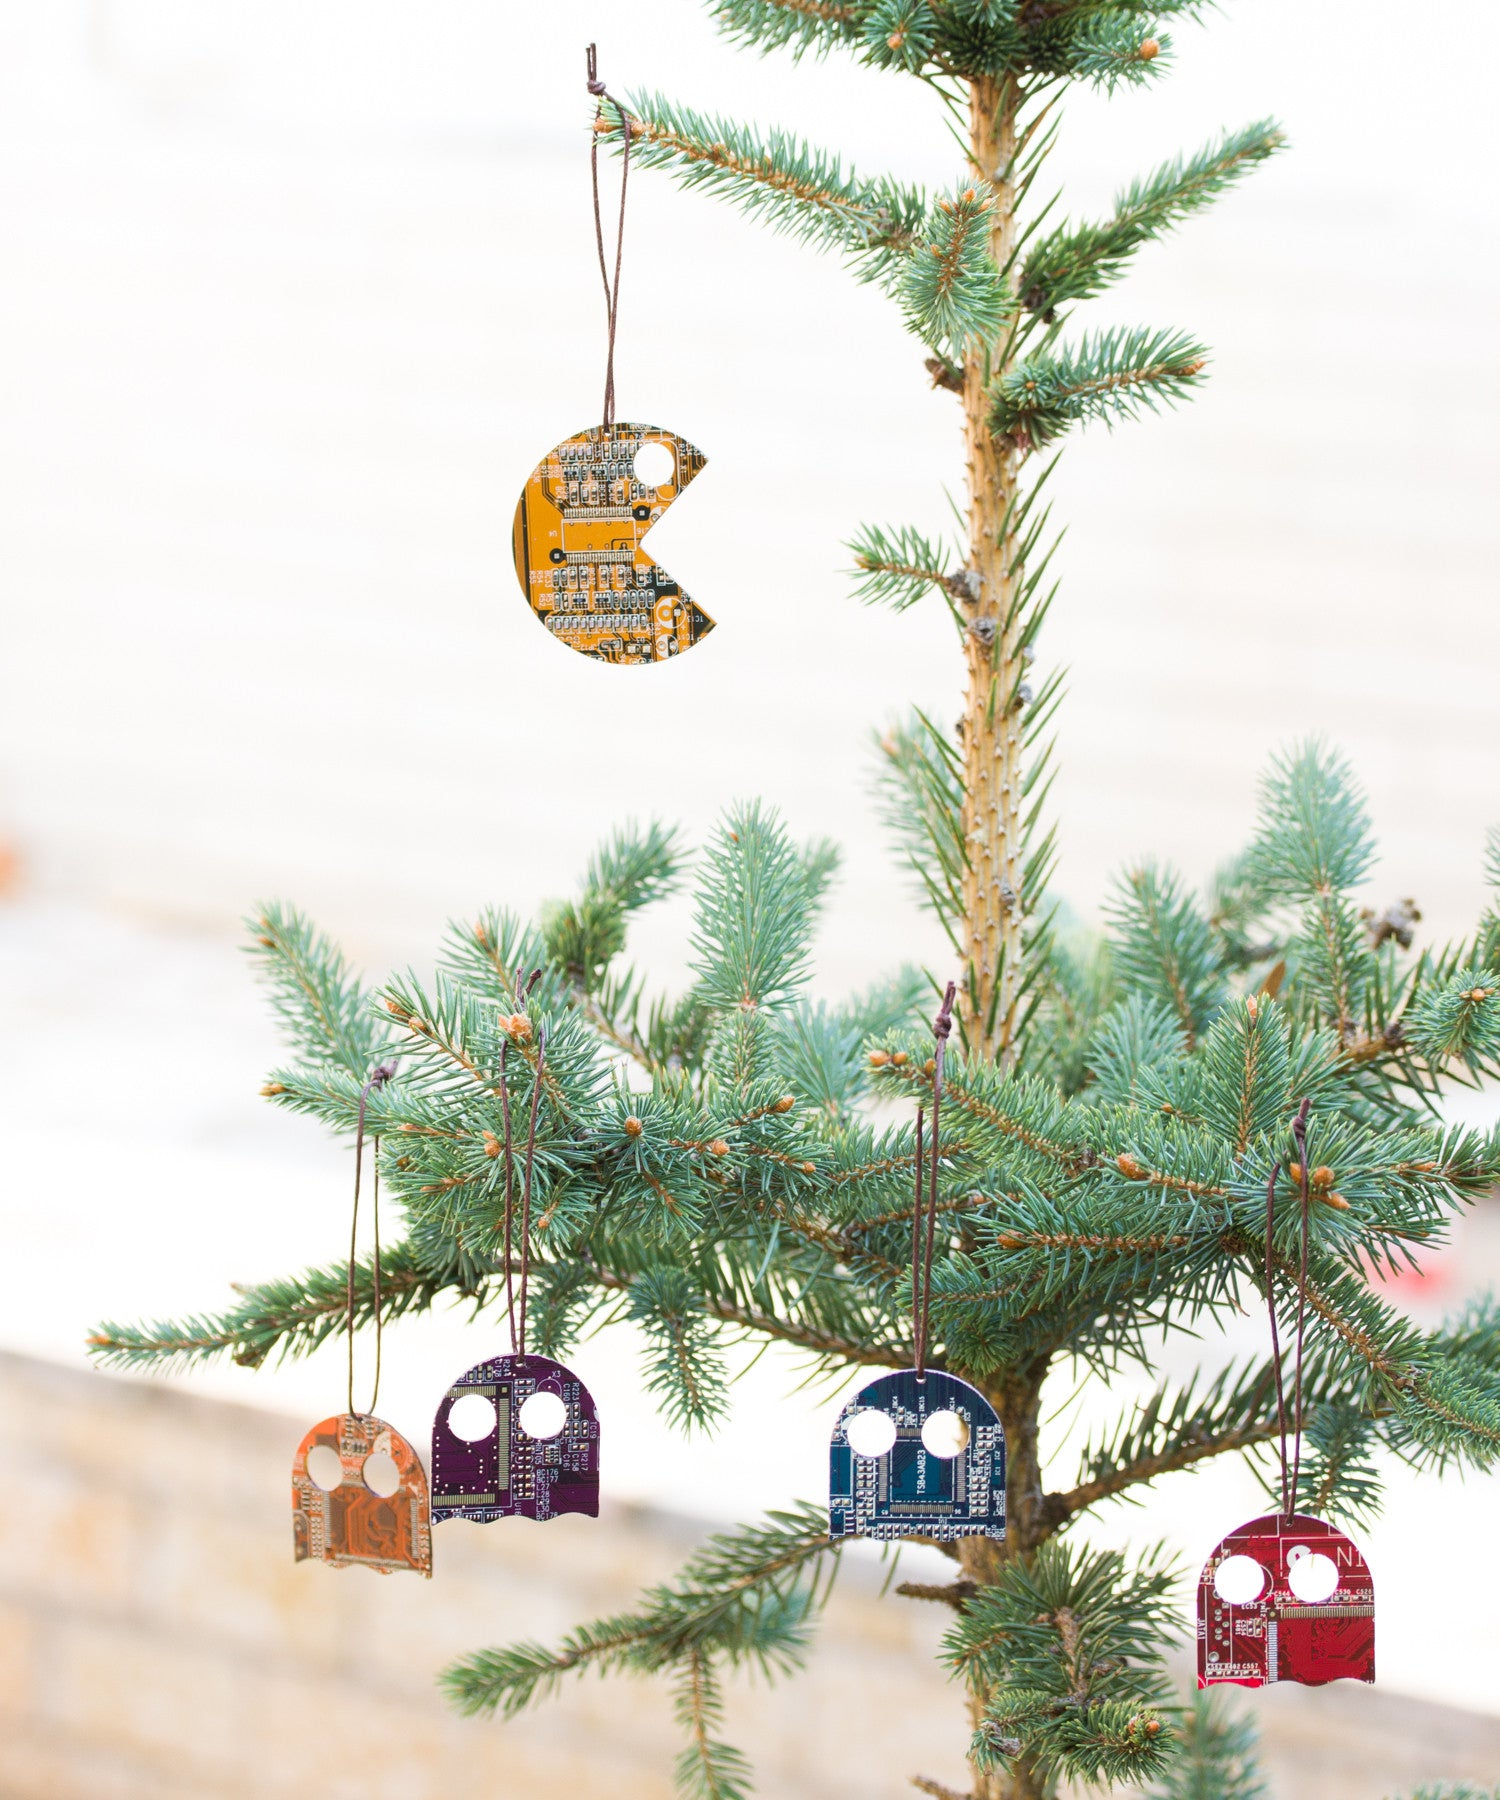 Pacman inspired Christmas Tree ornament